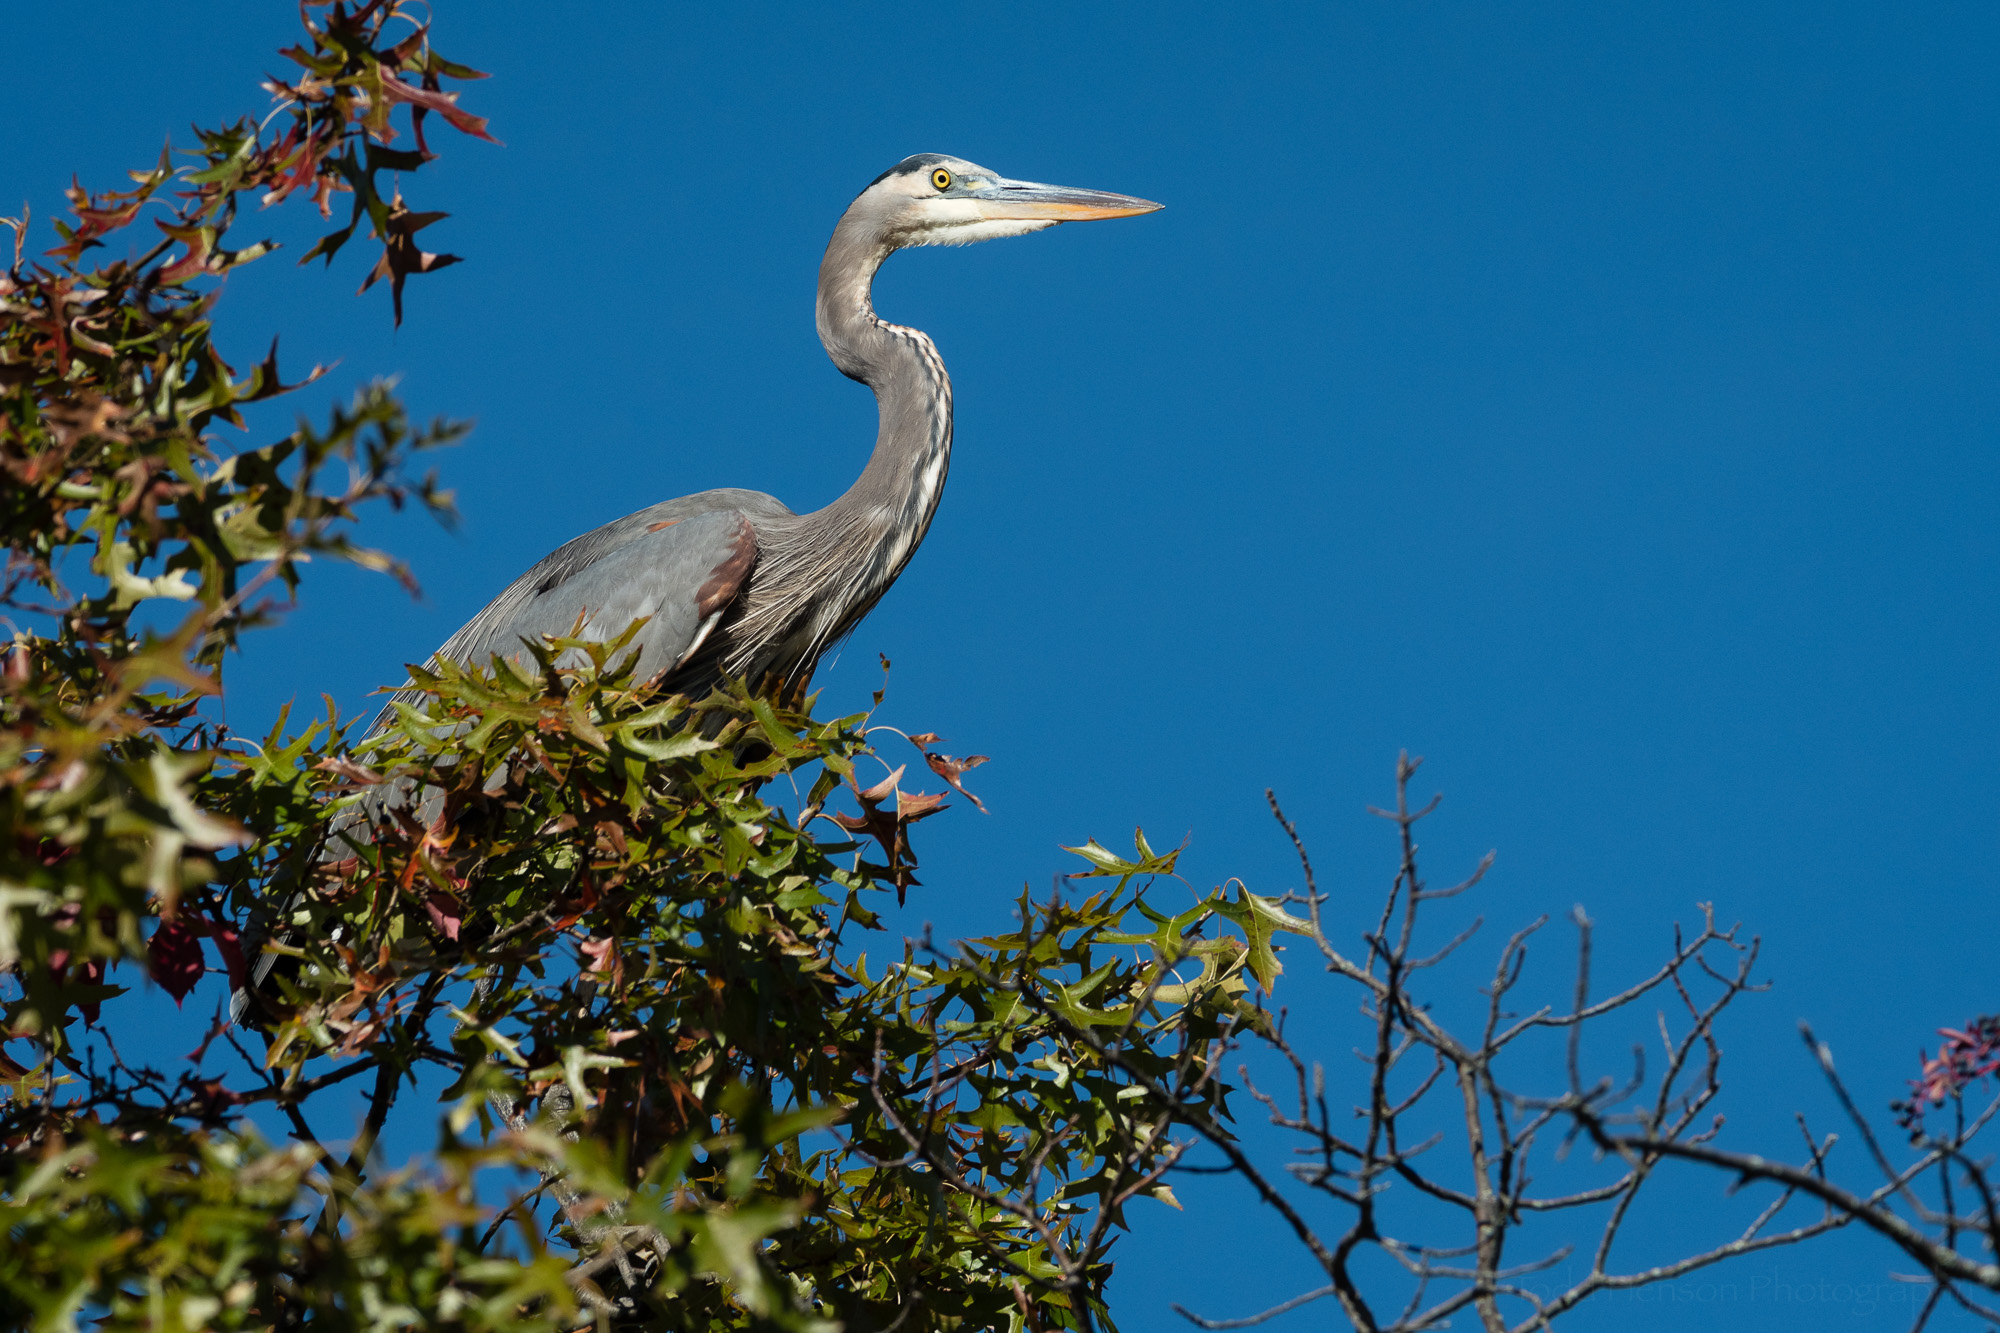 Great Blue Heron in a tree, with its head tilted slightly in my direction.